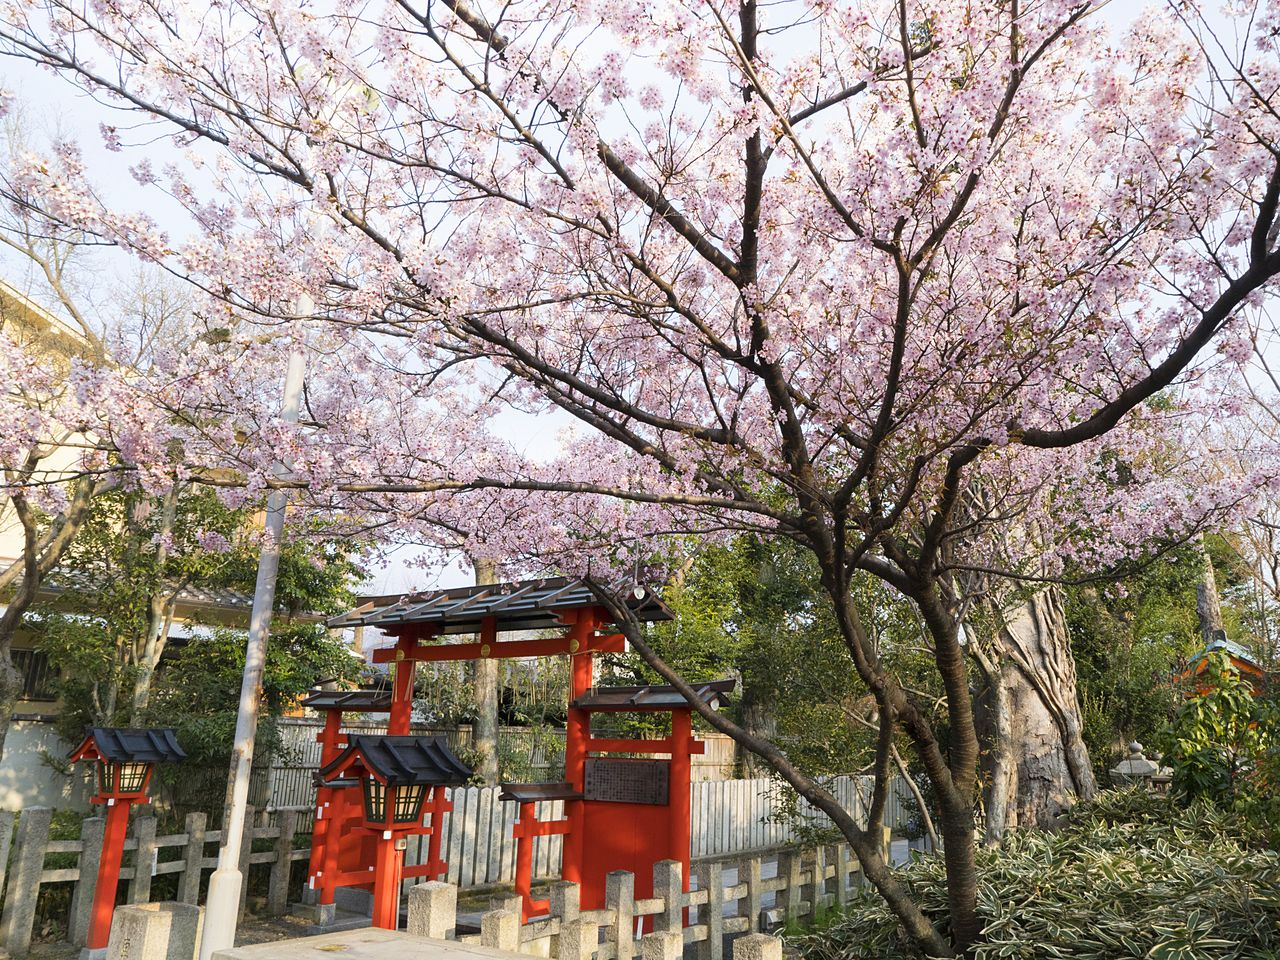 The cherry blossoms in bloom near the third torii, also a popular spot for the turning of the leaves in autumn.